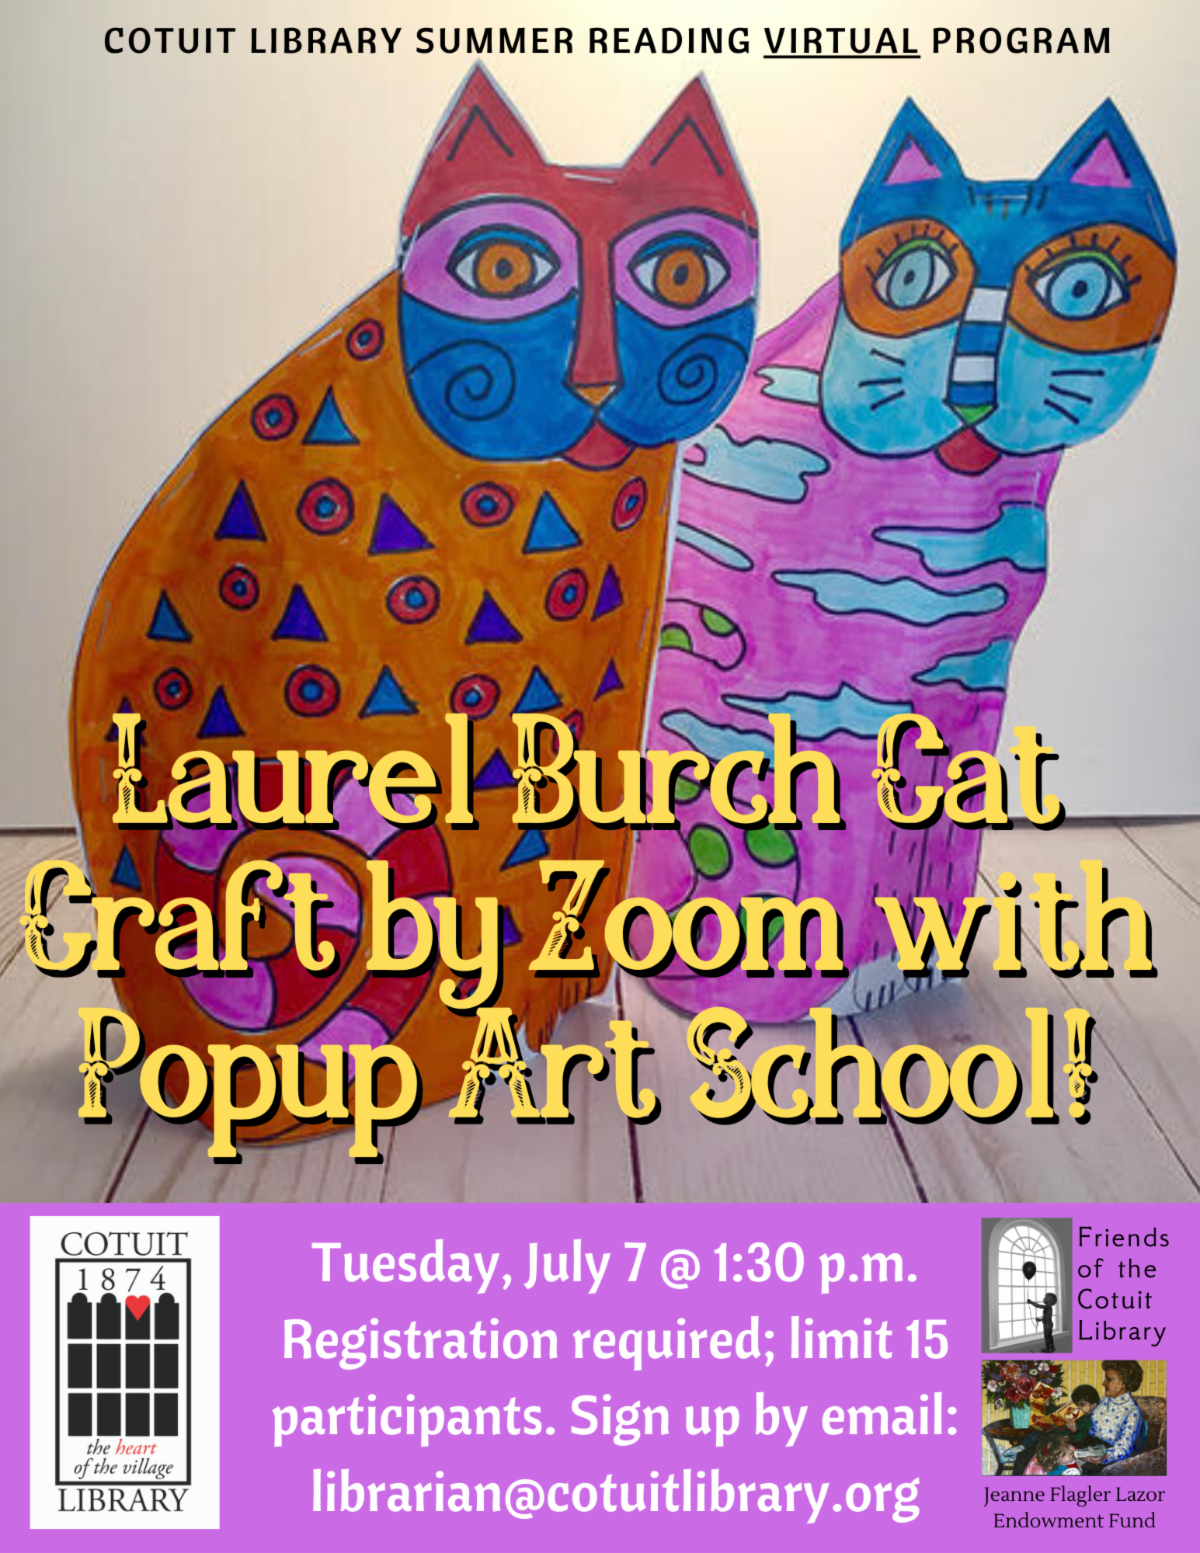 Popup Art School Zoom Workshop - Tuesday, July 7@1:30PM